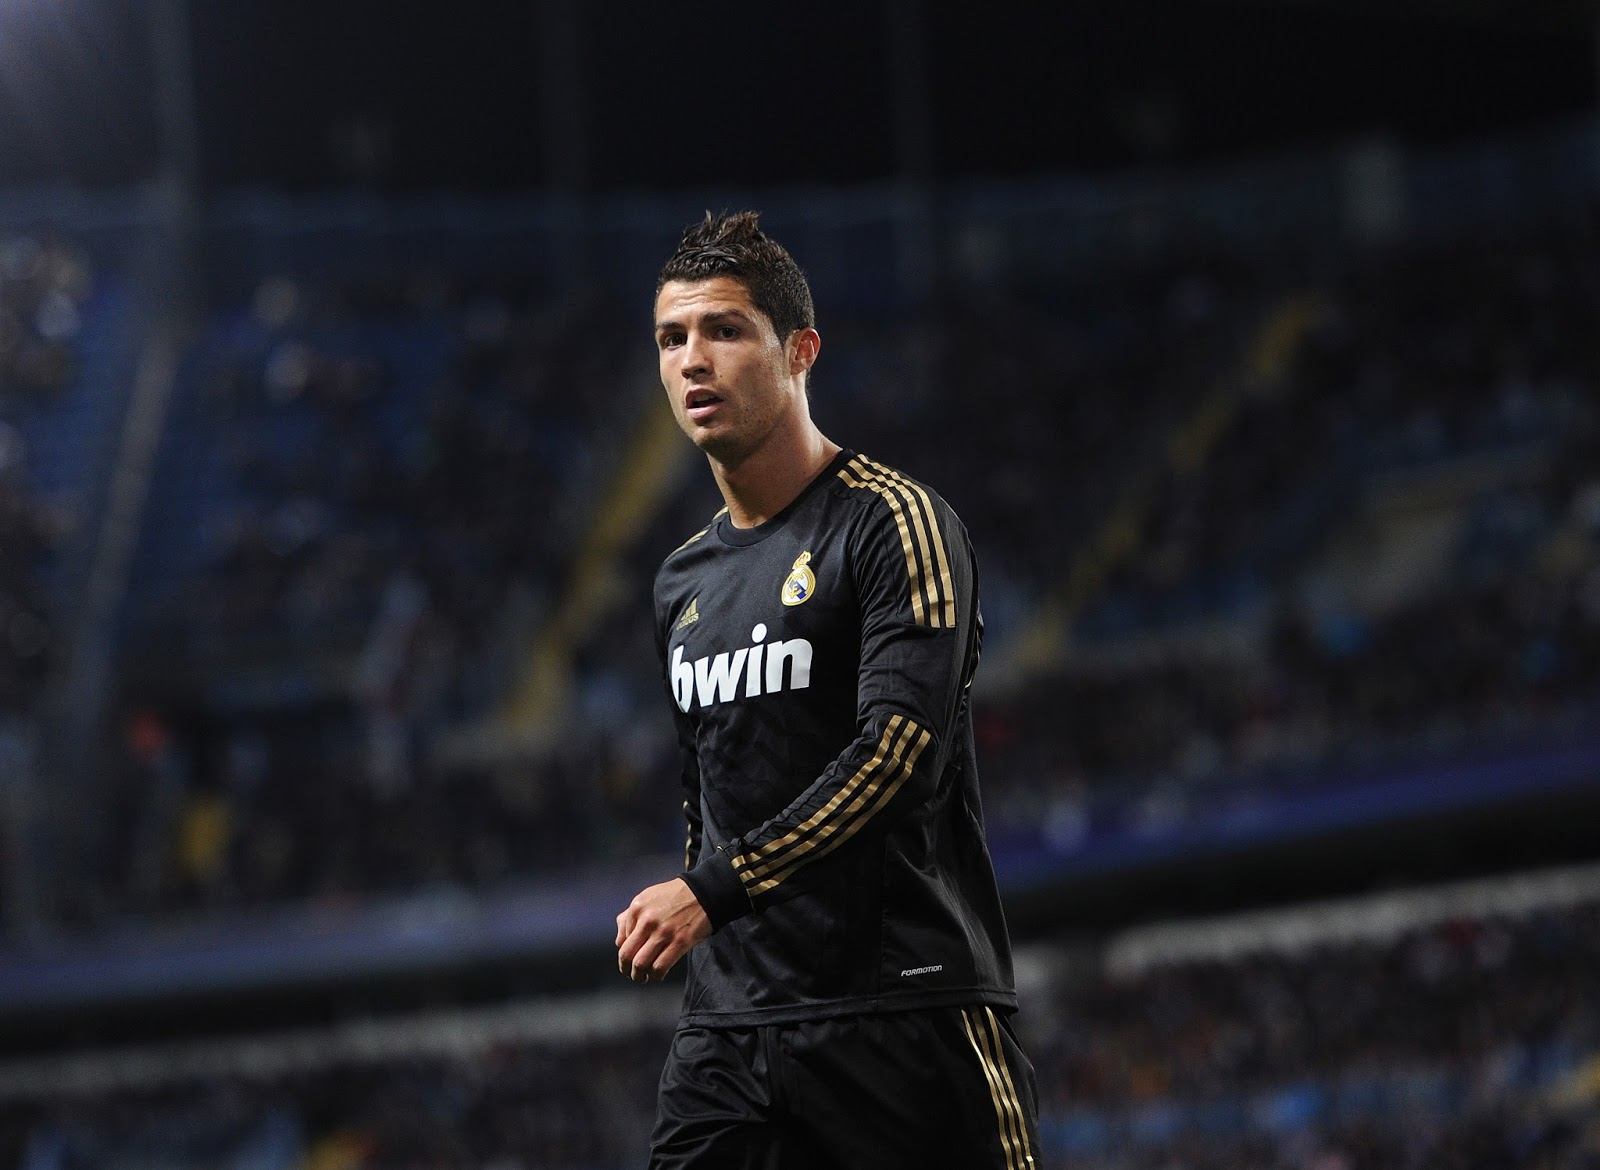 Best Football Player Cristiano Ronaldo , HD Wallpaper & Backgrounds